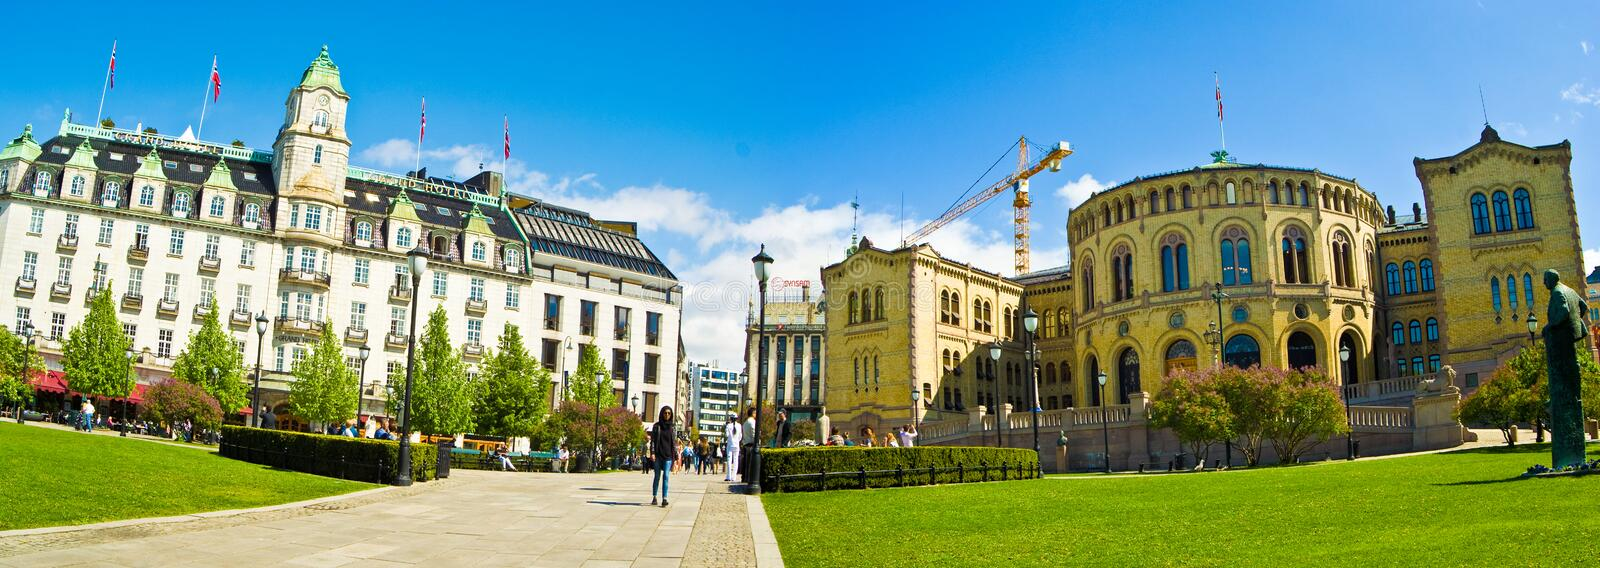 Oslo, Norway. Parliament and Grand Hotel in Oslo, Norway stock photos